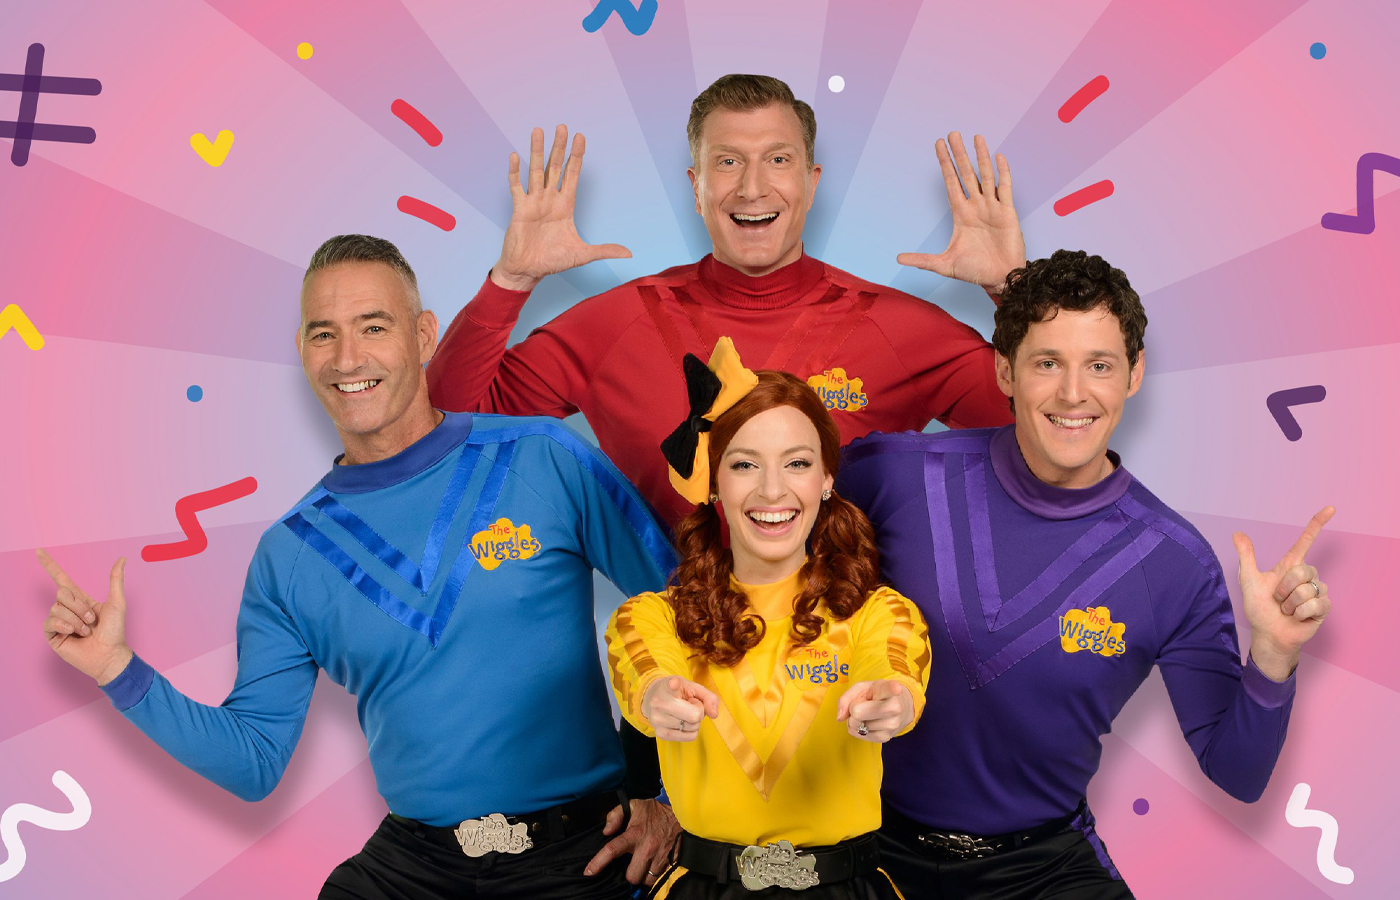 The Wiggles: Party Time Tour — Tickets On Sale NOW!